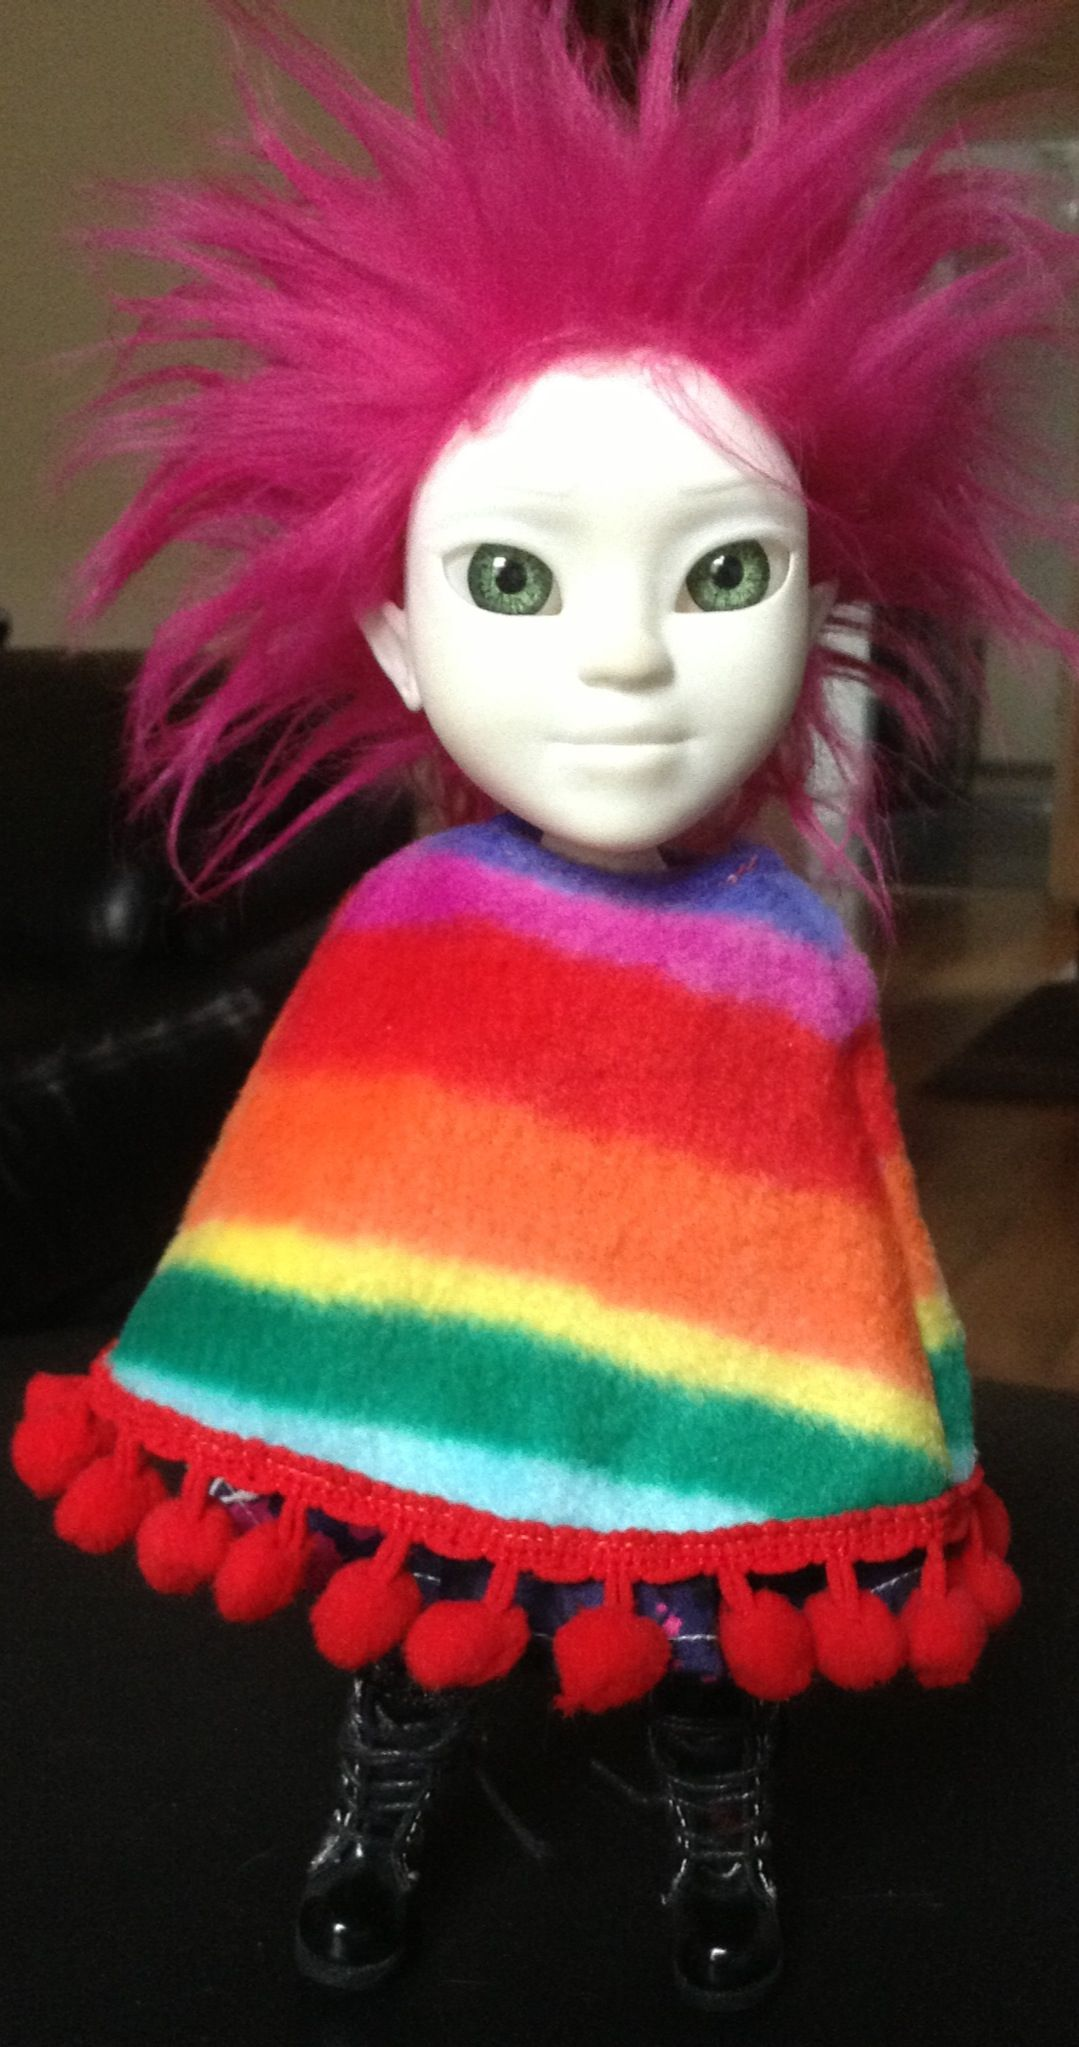 Makie Me 'Tina' showing off her rainbow poncho and pink hair....3D printed doll http://makie.me/